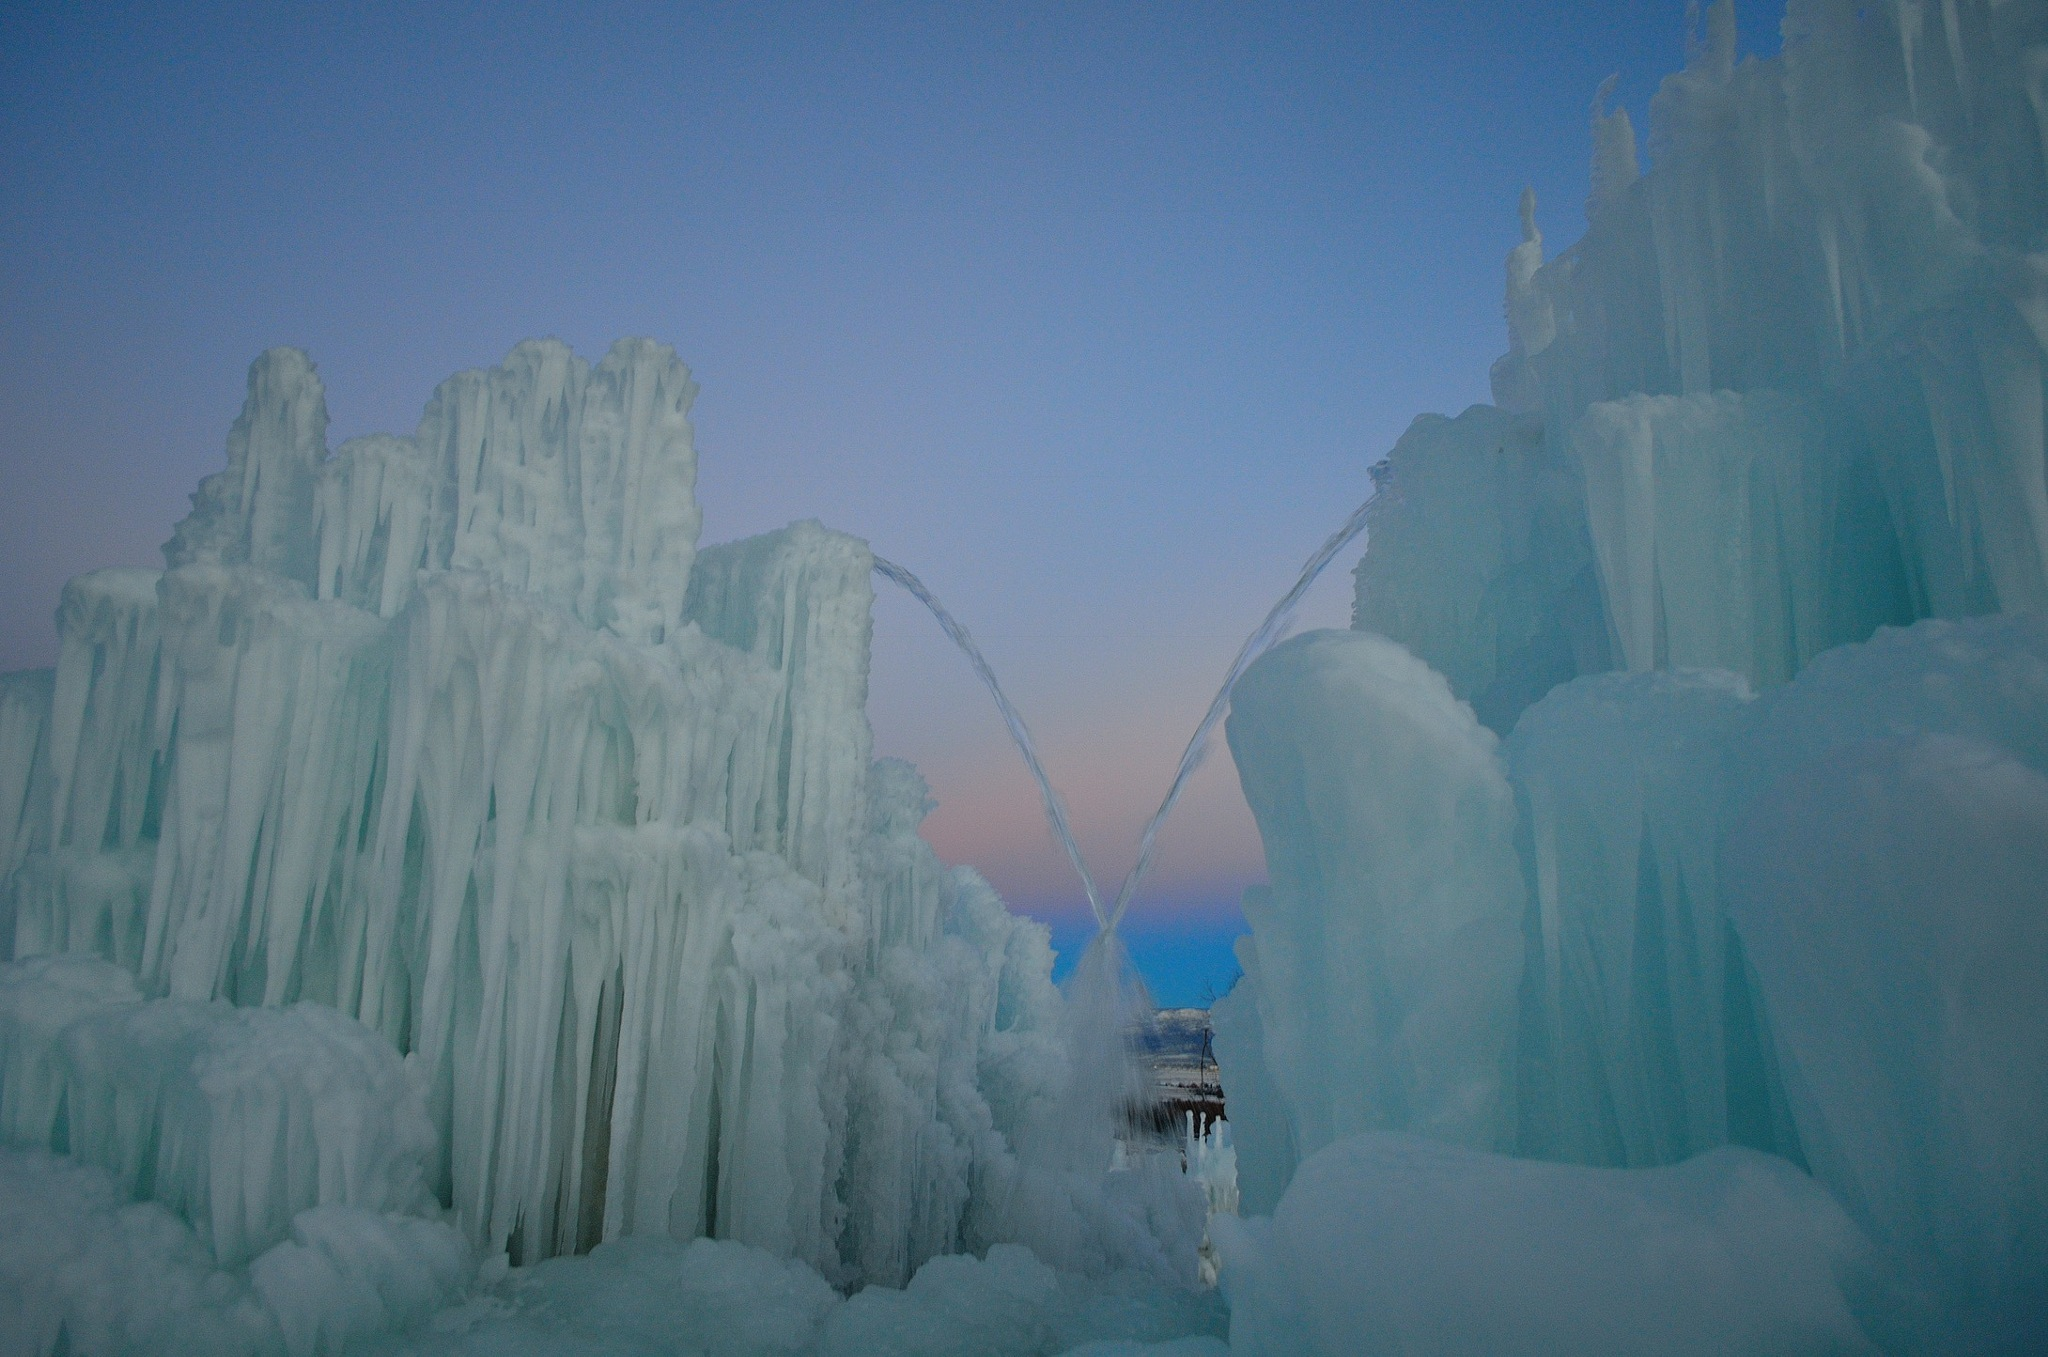 Ice castles in the sky by Periwinkle